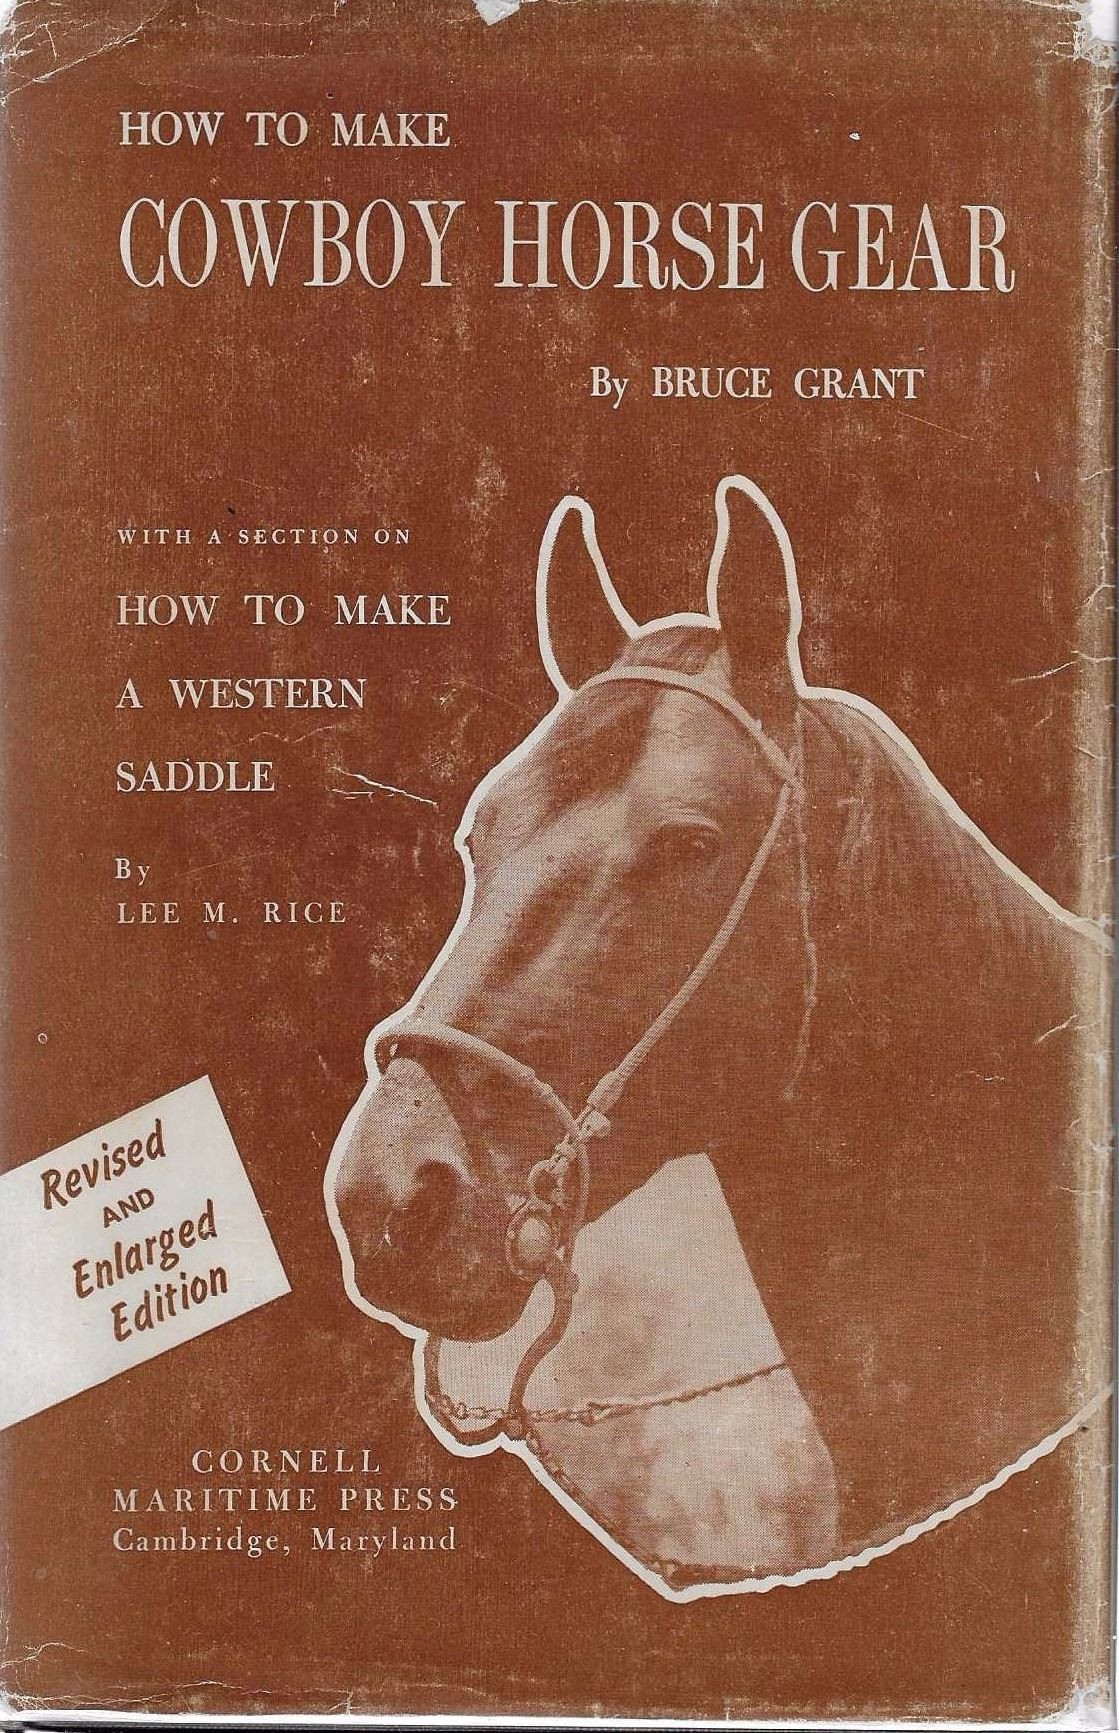 2 Books How To Make Cowboy Horse Gear Bruce Grant Cornell Maritime Press 1956 Illust Revised